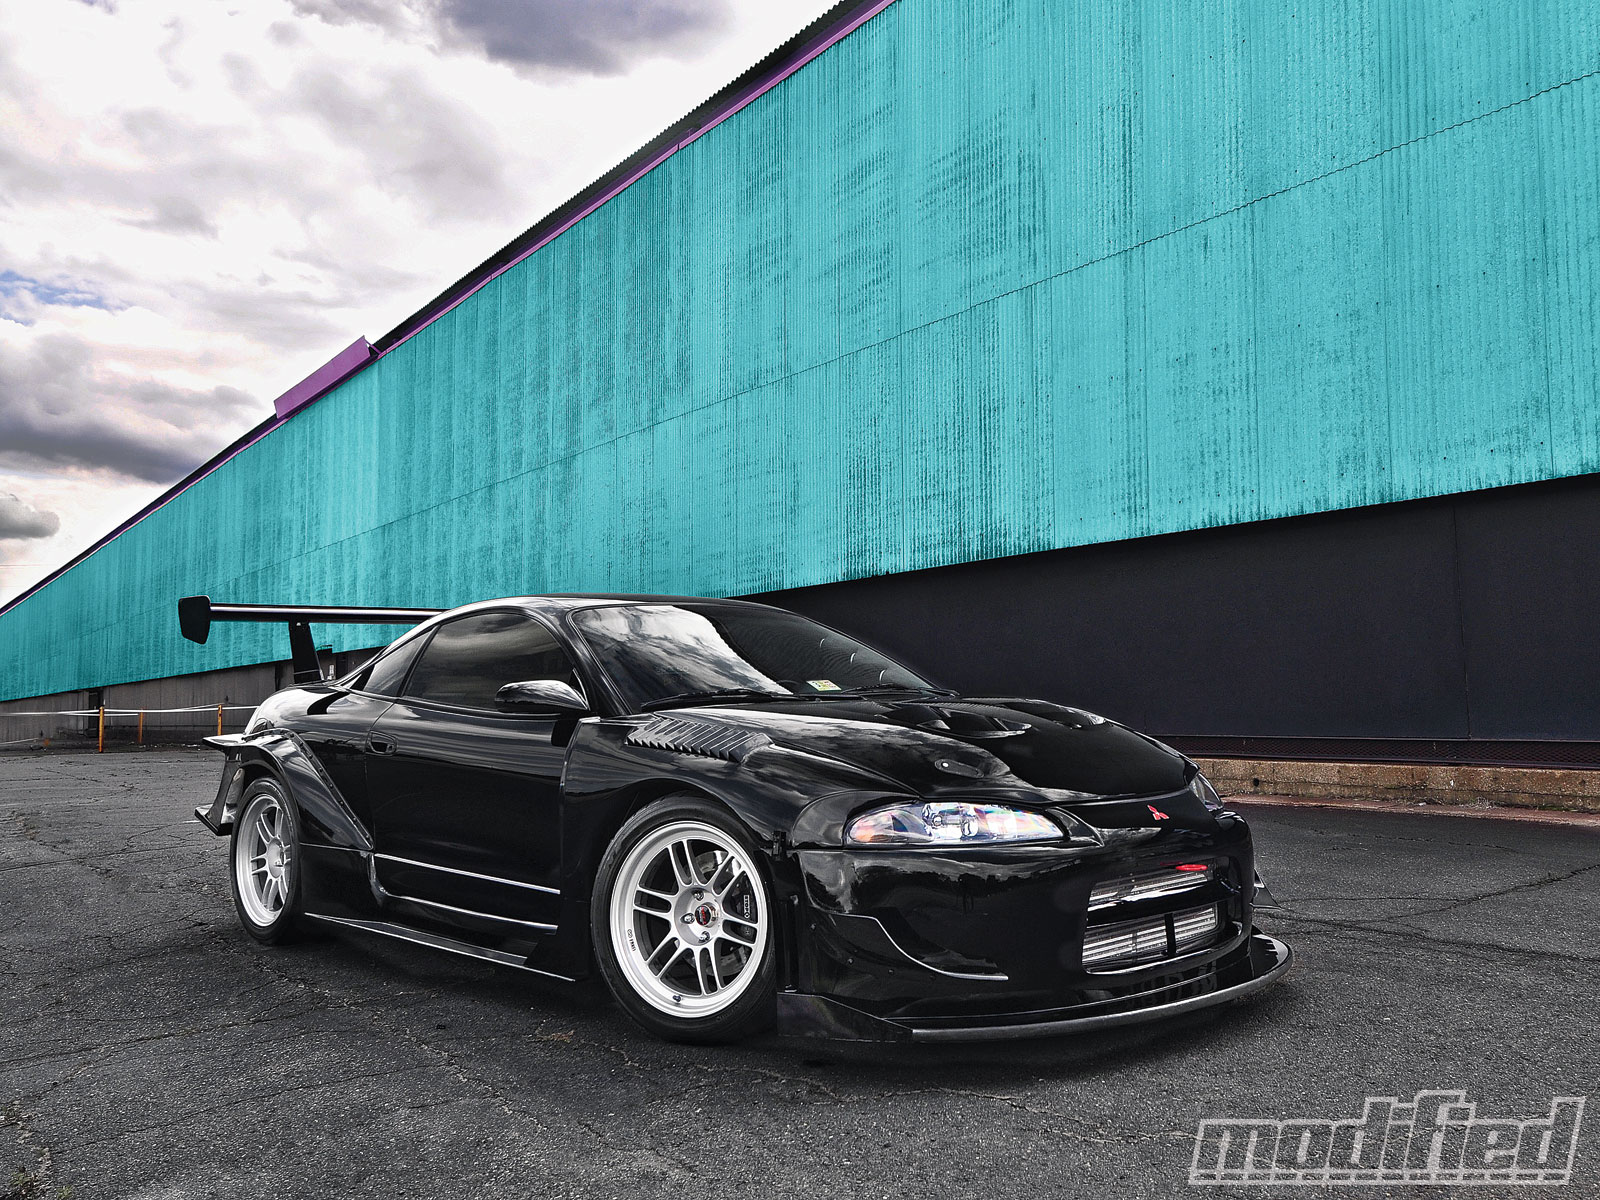 1995 Mitsubishi Eclipse Gsx Modified